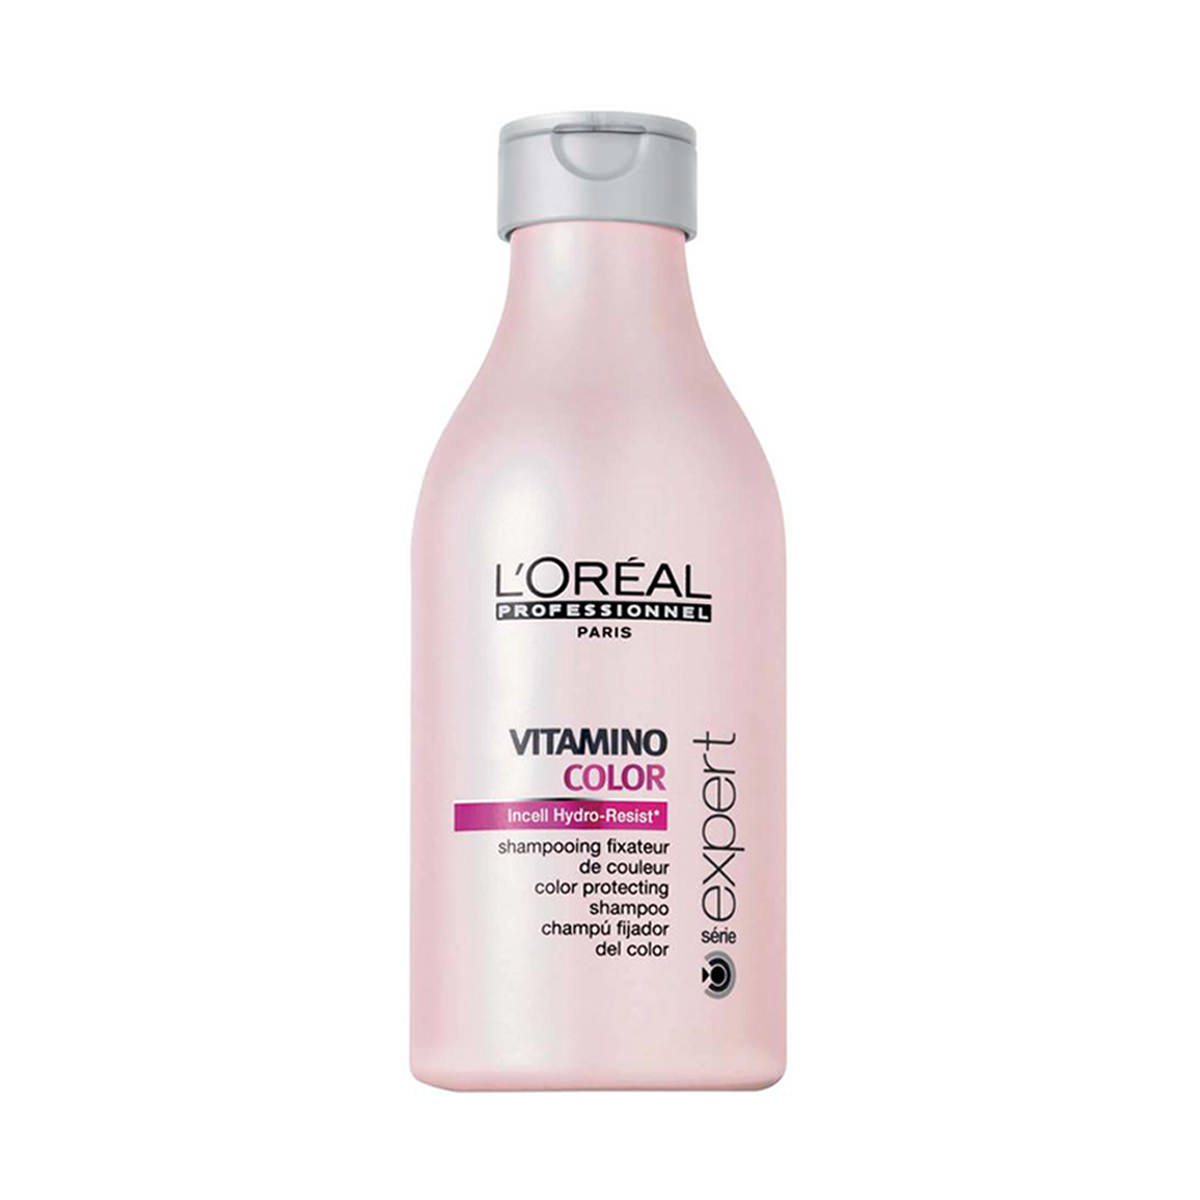 L'oreal-Professionnel-Vitamino-Color-A-OX-Shampoo-(250-ml)-sfw(1)